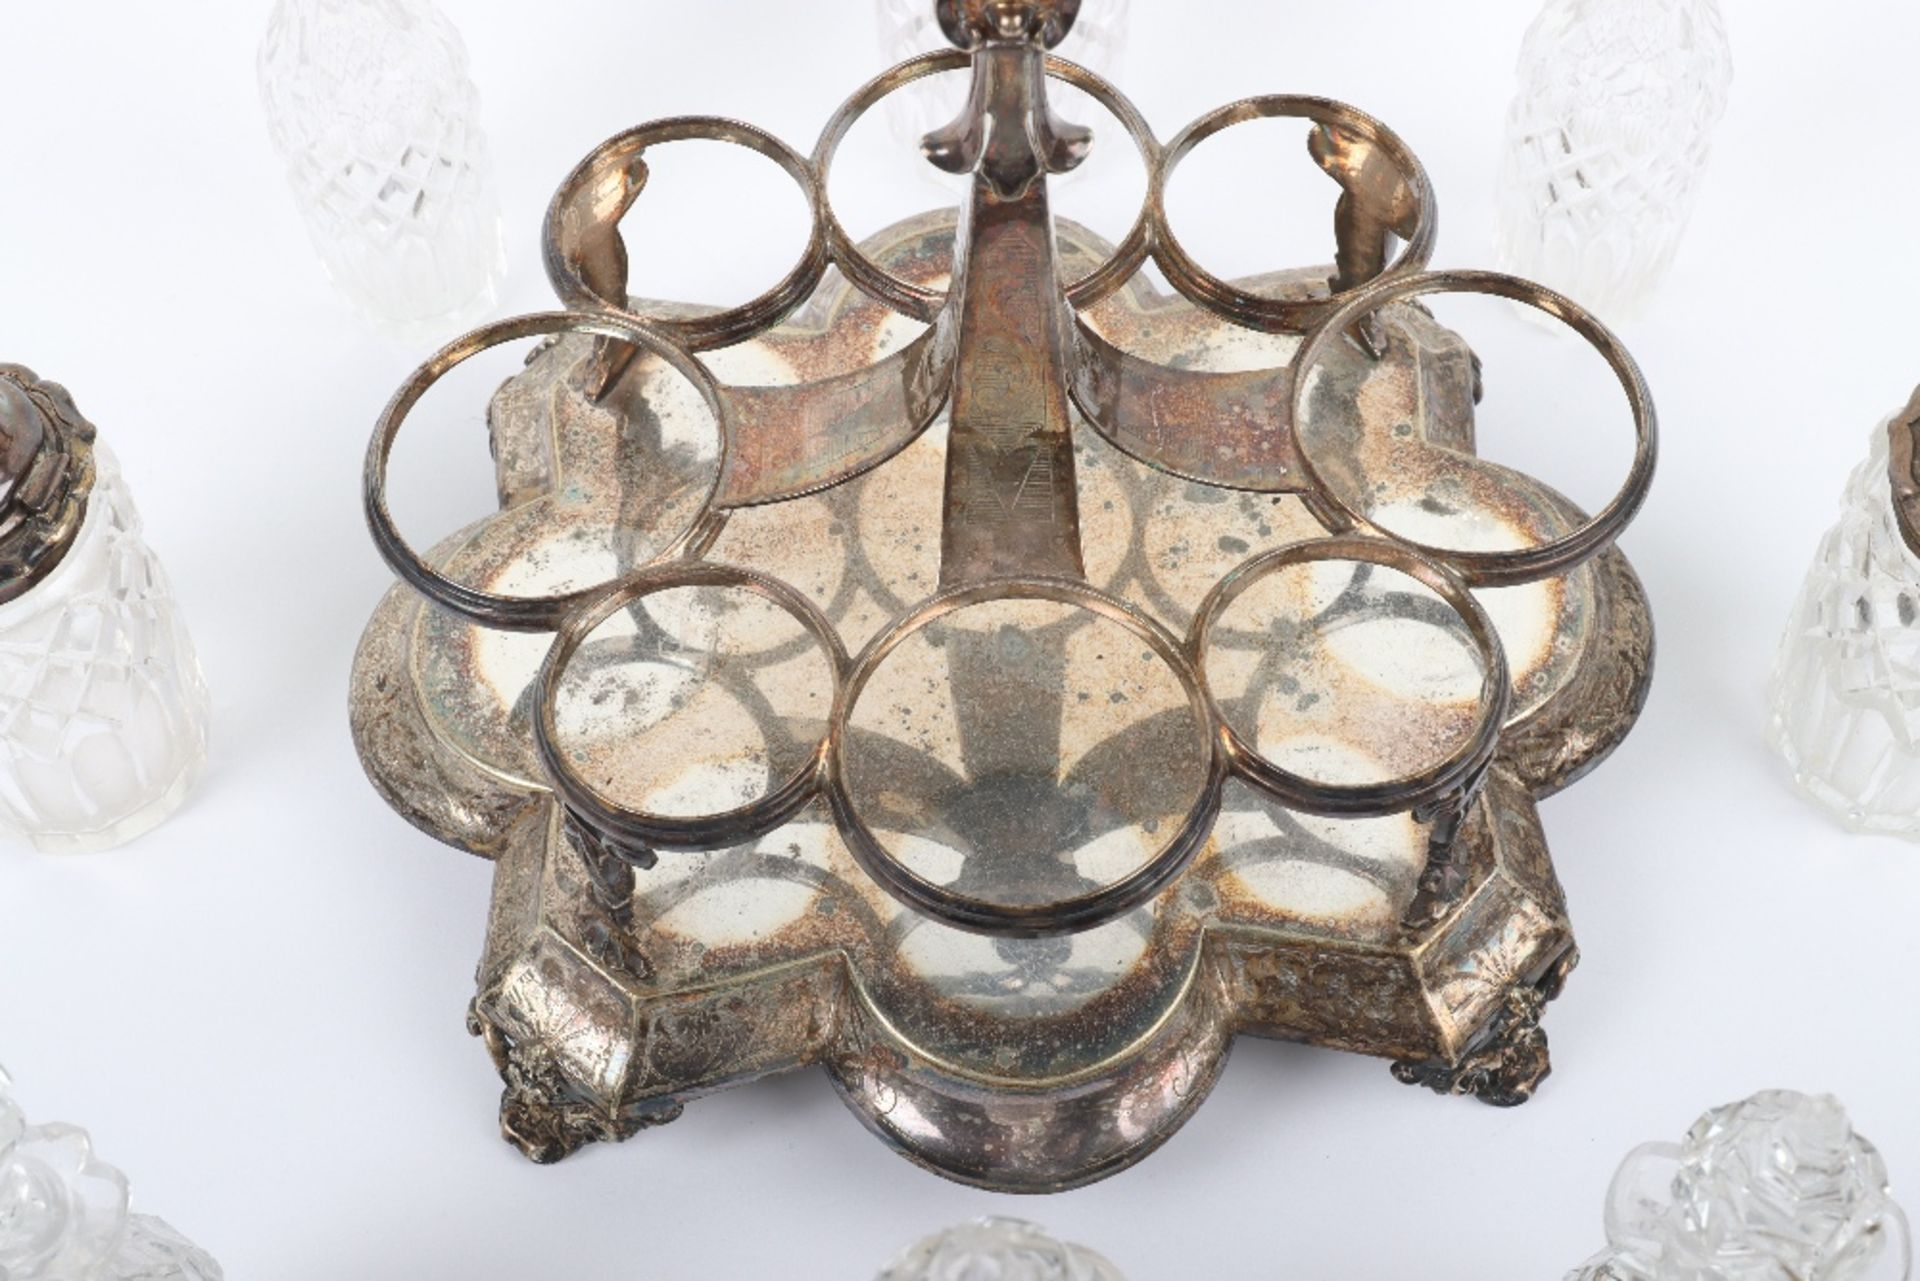 A Victorian silver and silver plated glass cruet set - Image 11 of 23